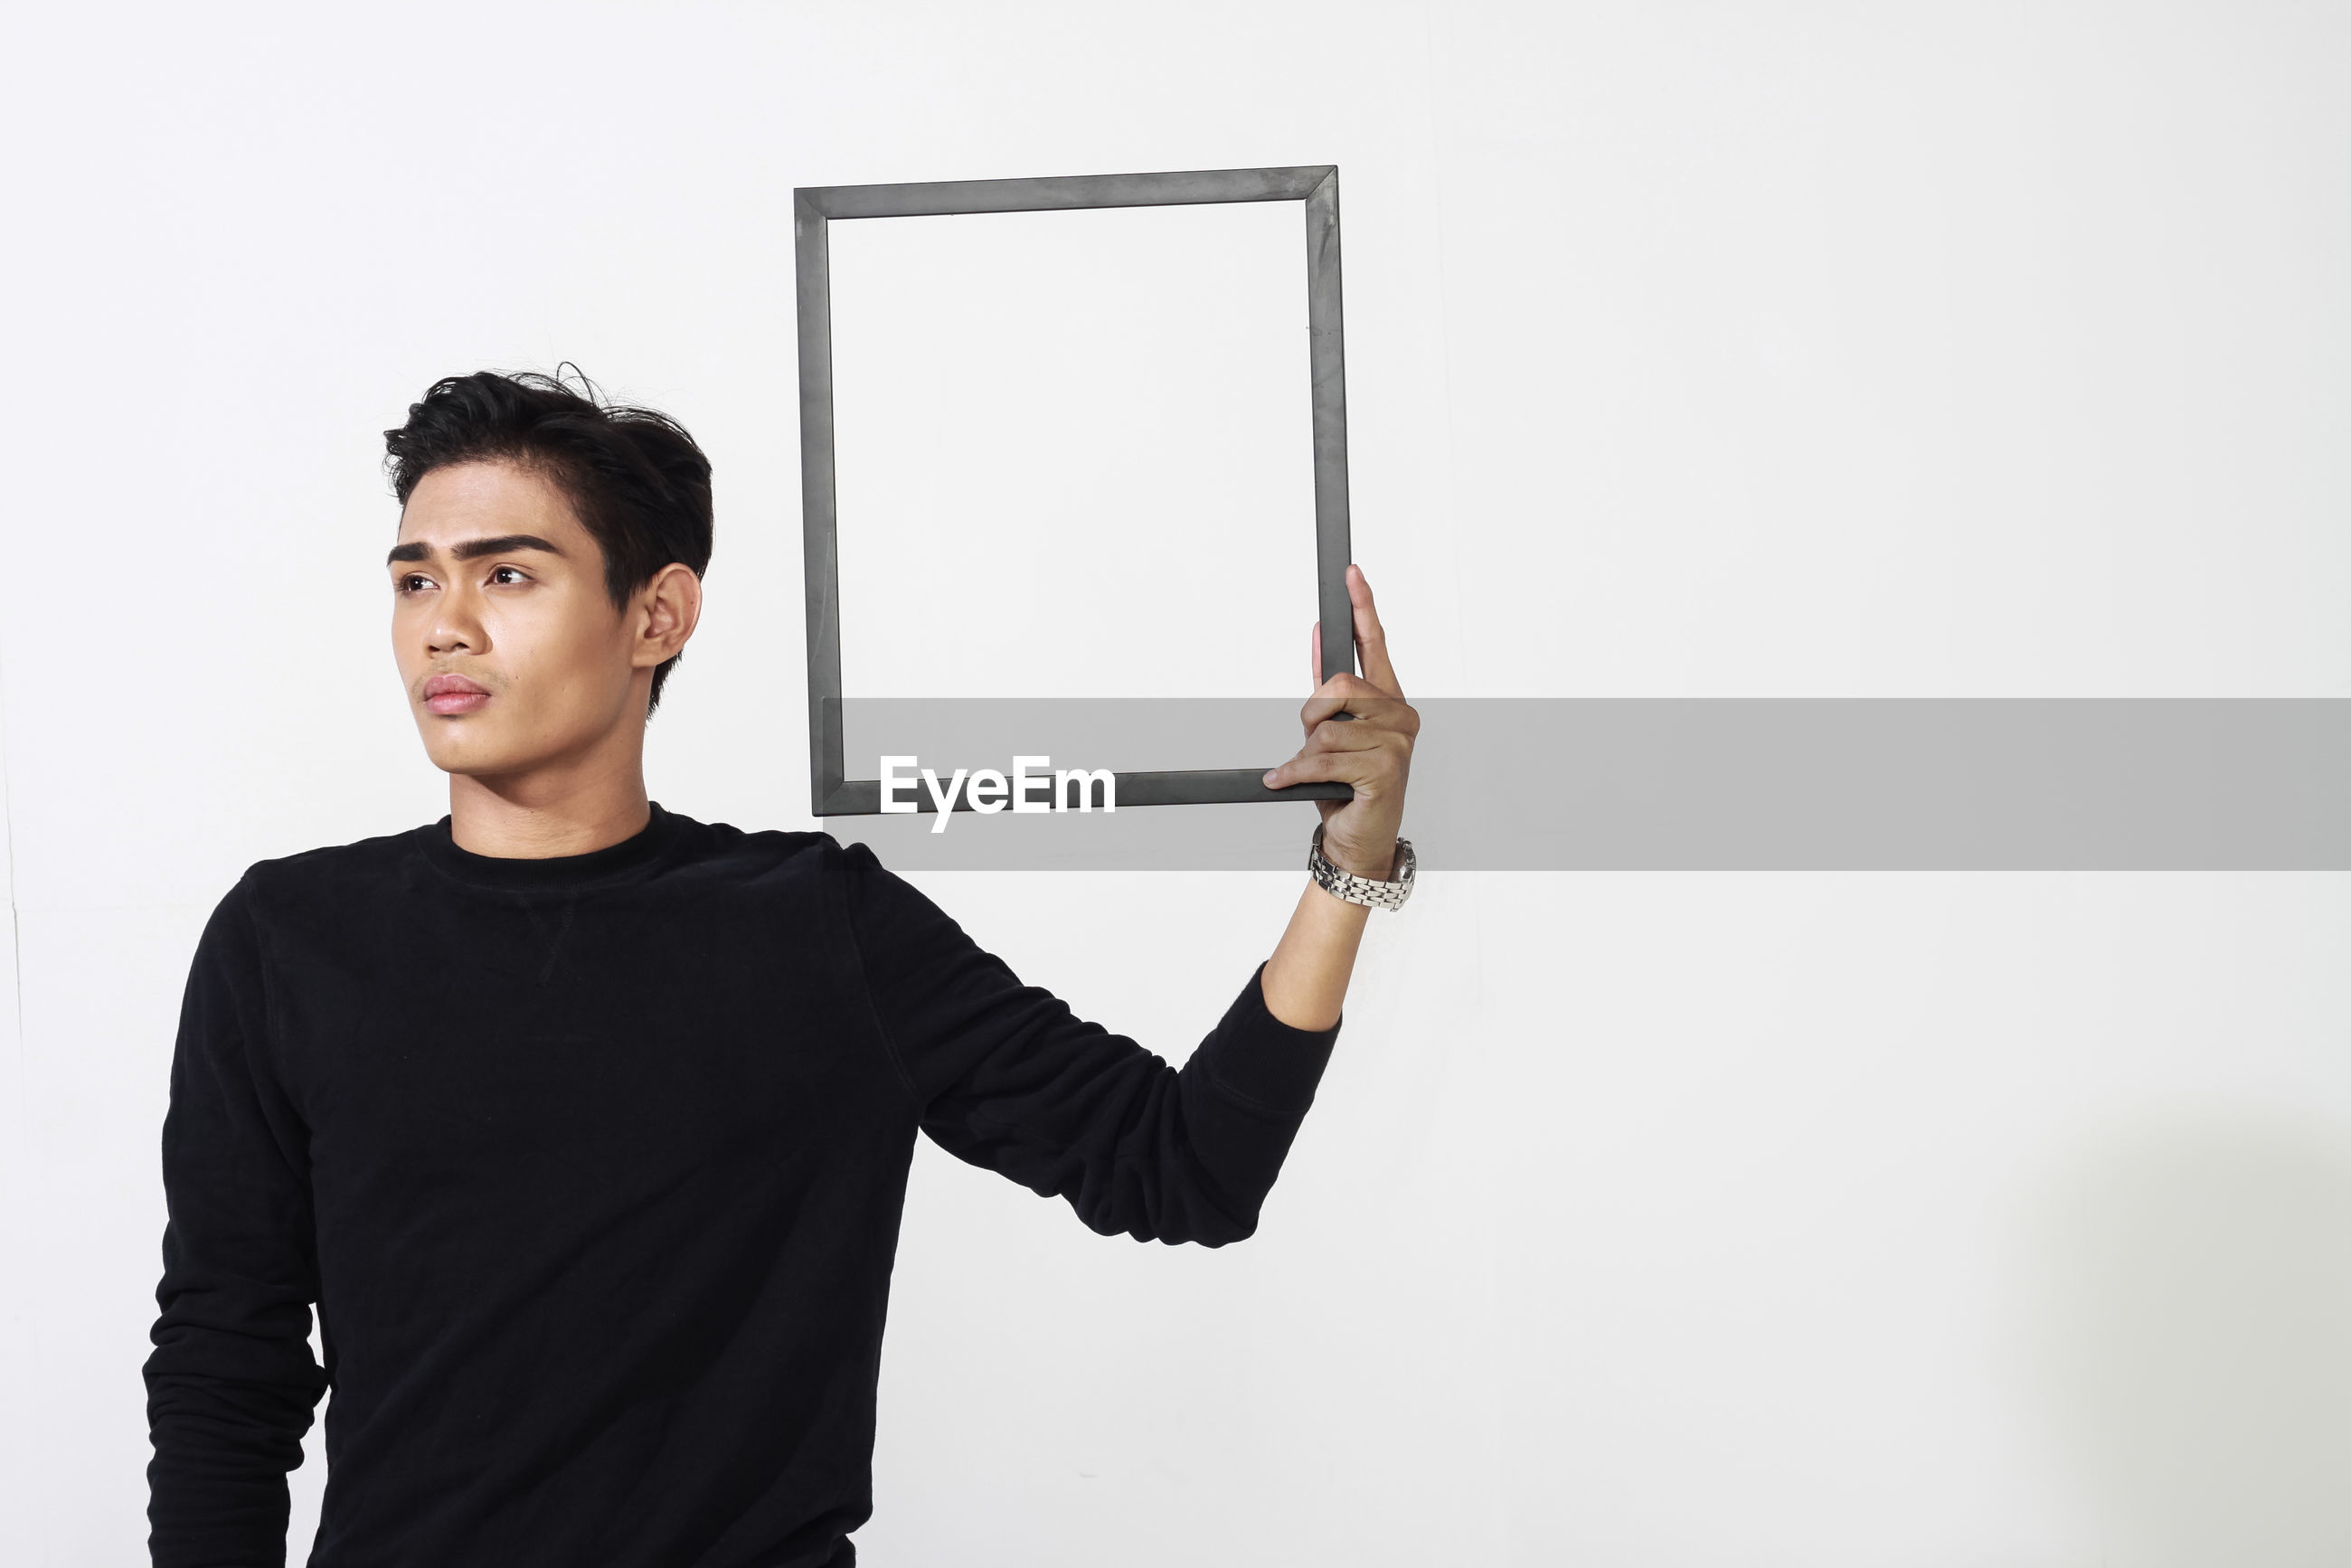 Young man holding frame while standing against white background